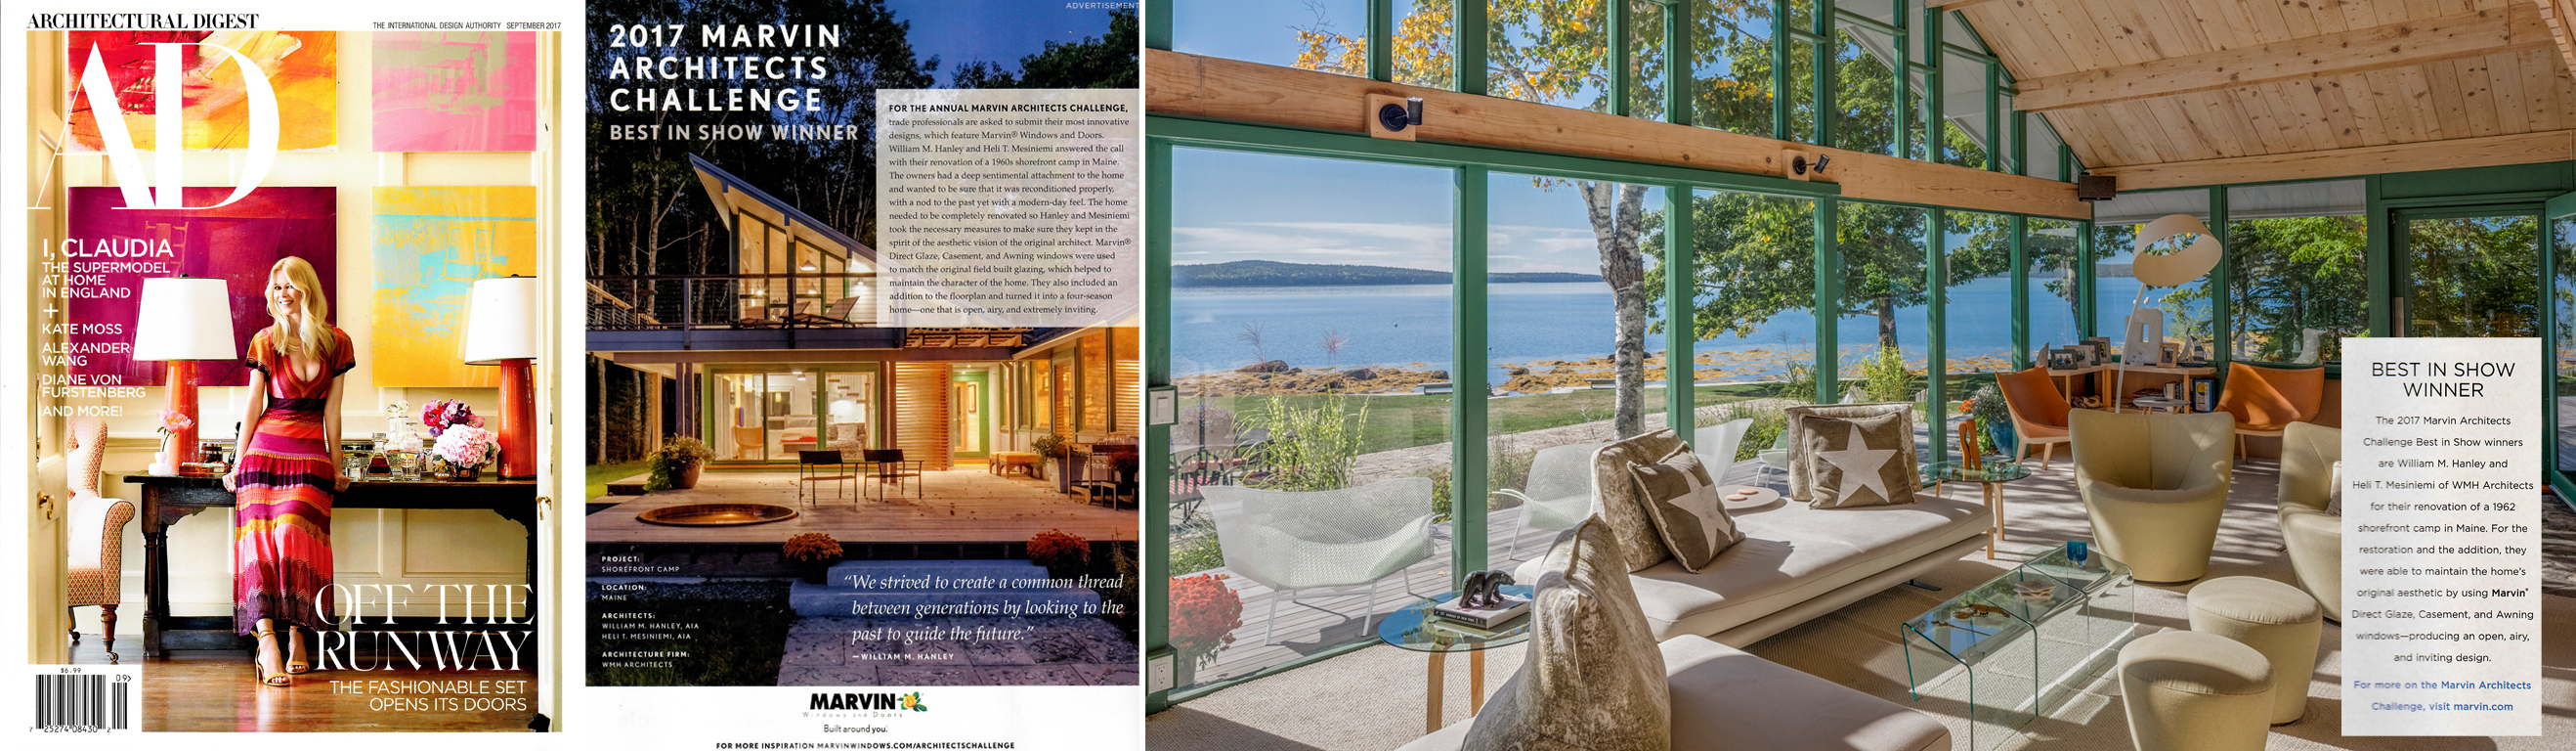 ARCHITECTURAL DIGEST September 2017. Photography By Brian Vanden Brink